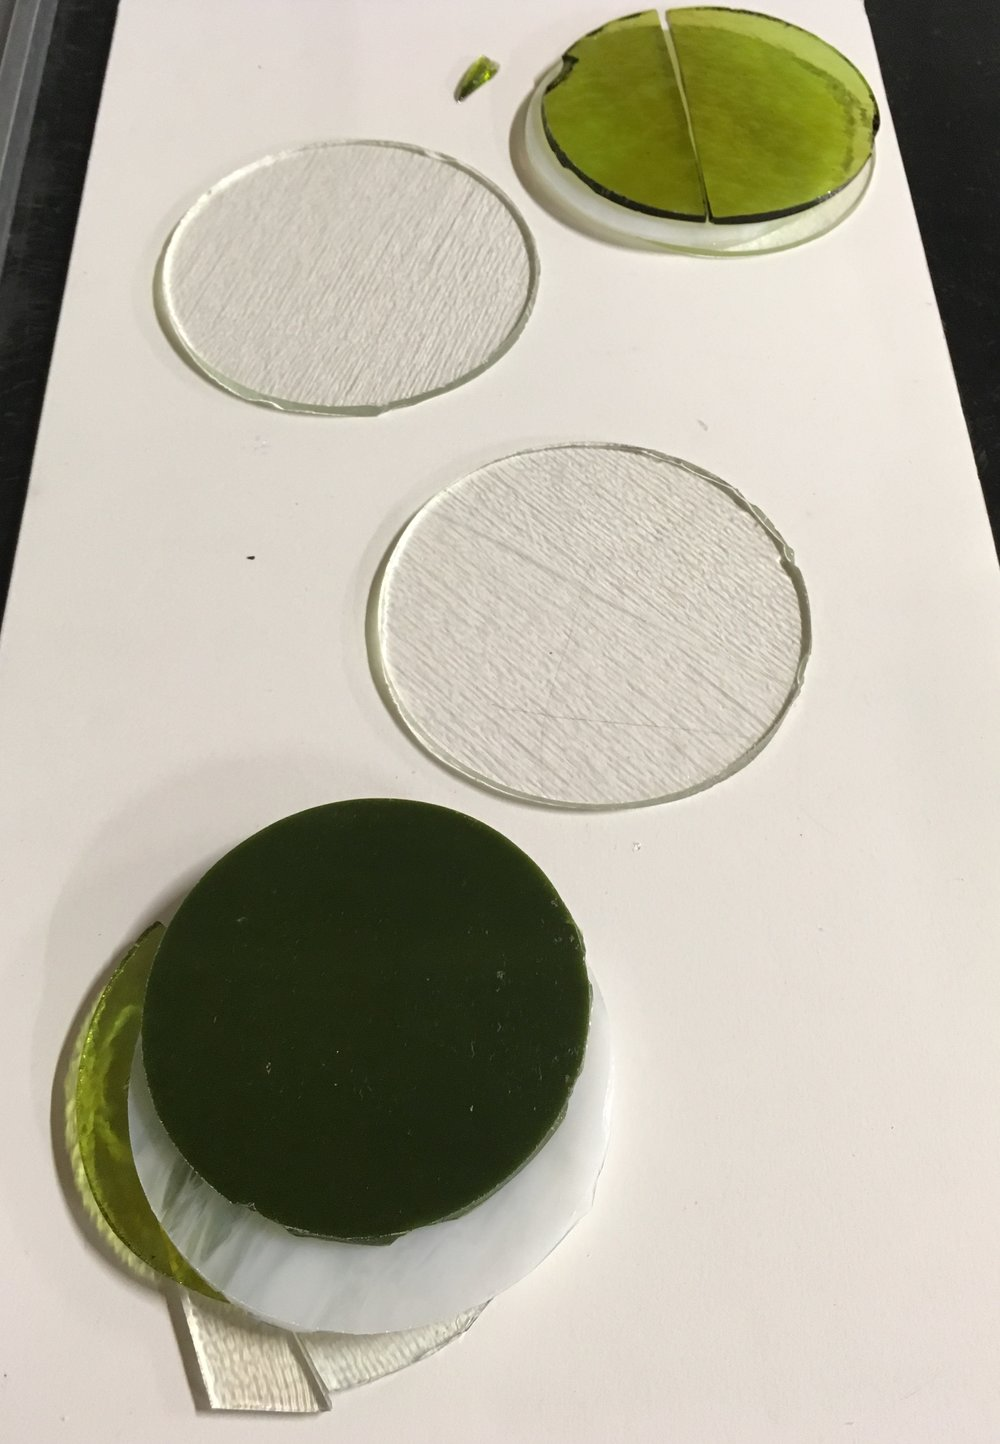 What happens when cutting circles with cold glass or not paying close attention — more cracks & uneven edges. (These were small test pieces.)